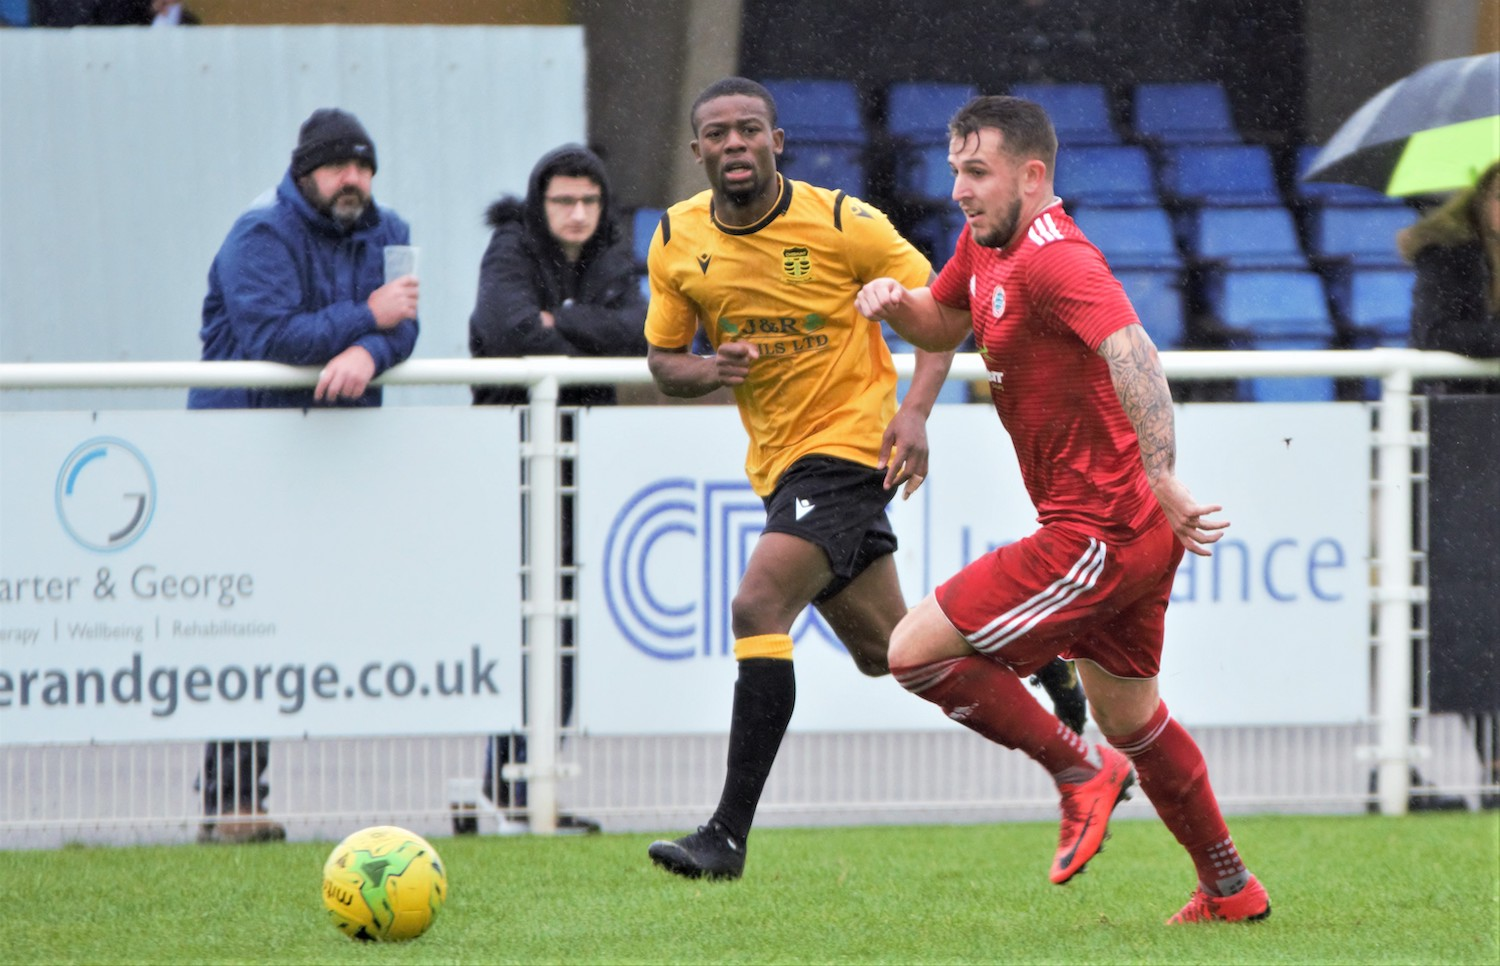 Read the full article - Reds host Cheshunt at Woodside